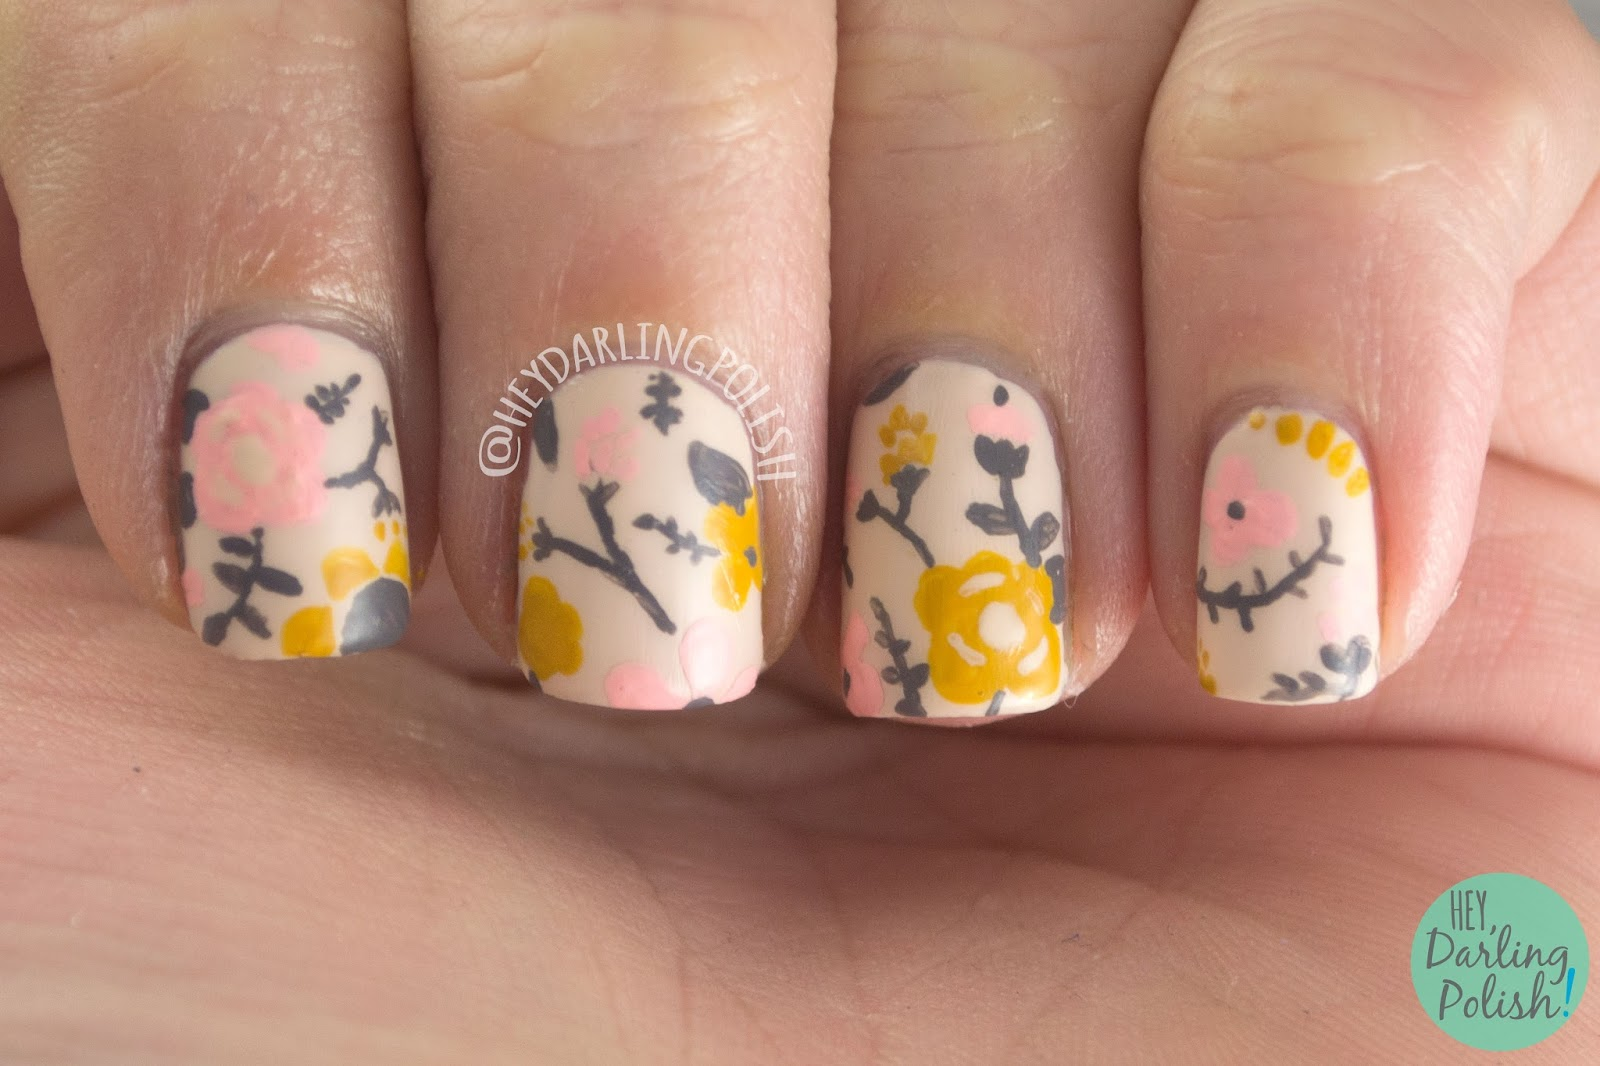 nails, nail art, nail polish, floral, flowers, acrylic paint, vintage, freehand, hey darling polish